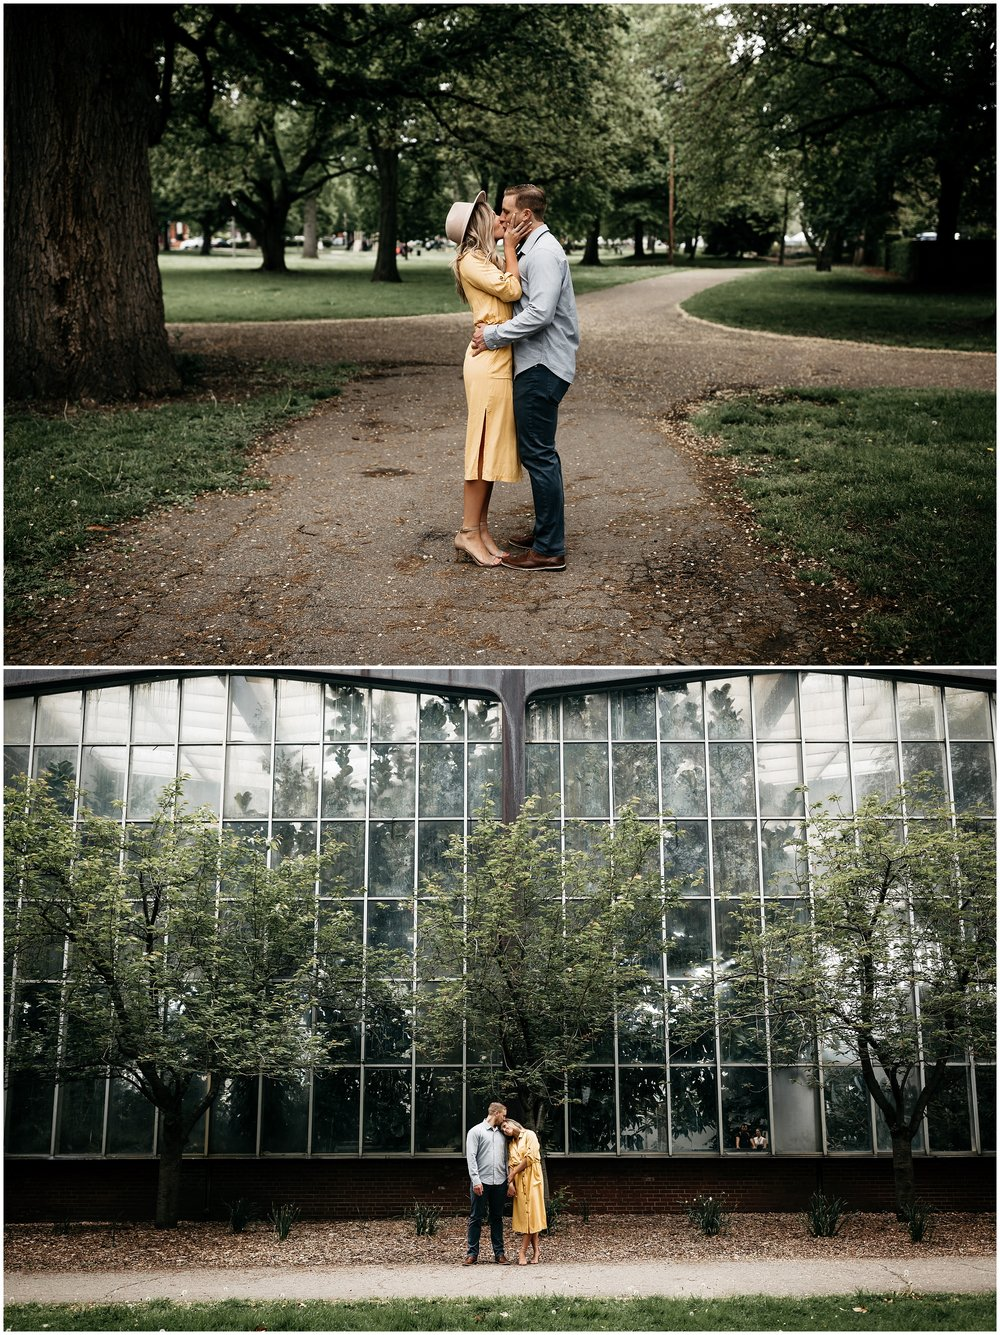 pittsburghengagementphotos_0007.jpg